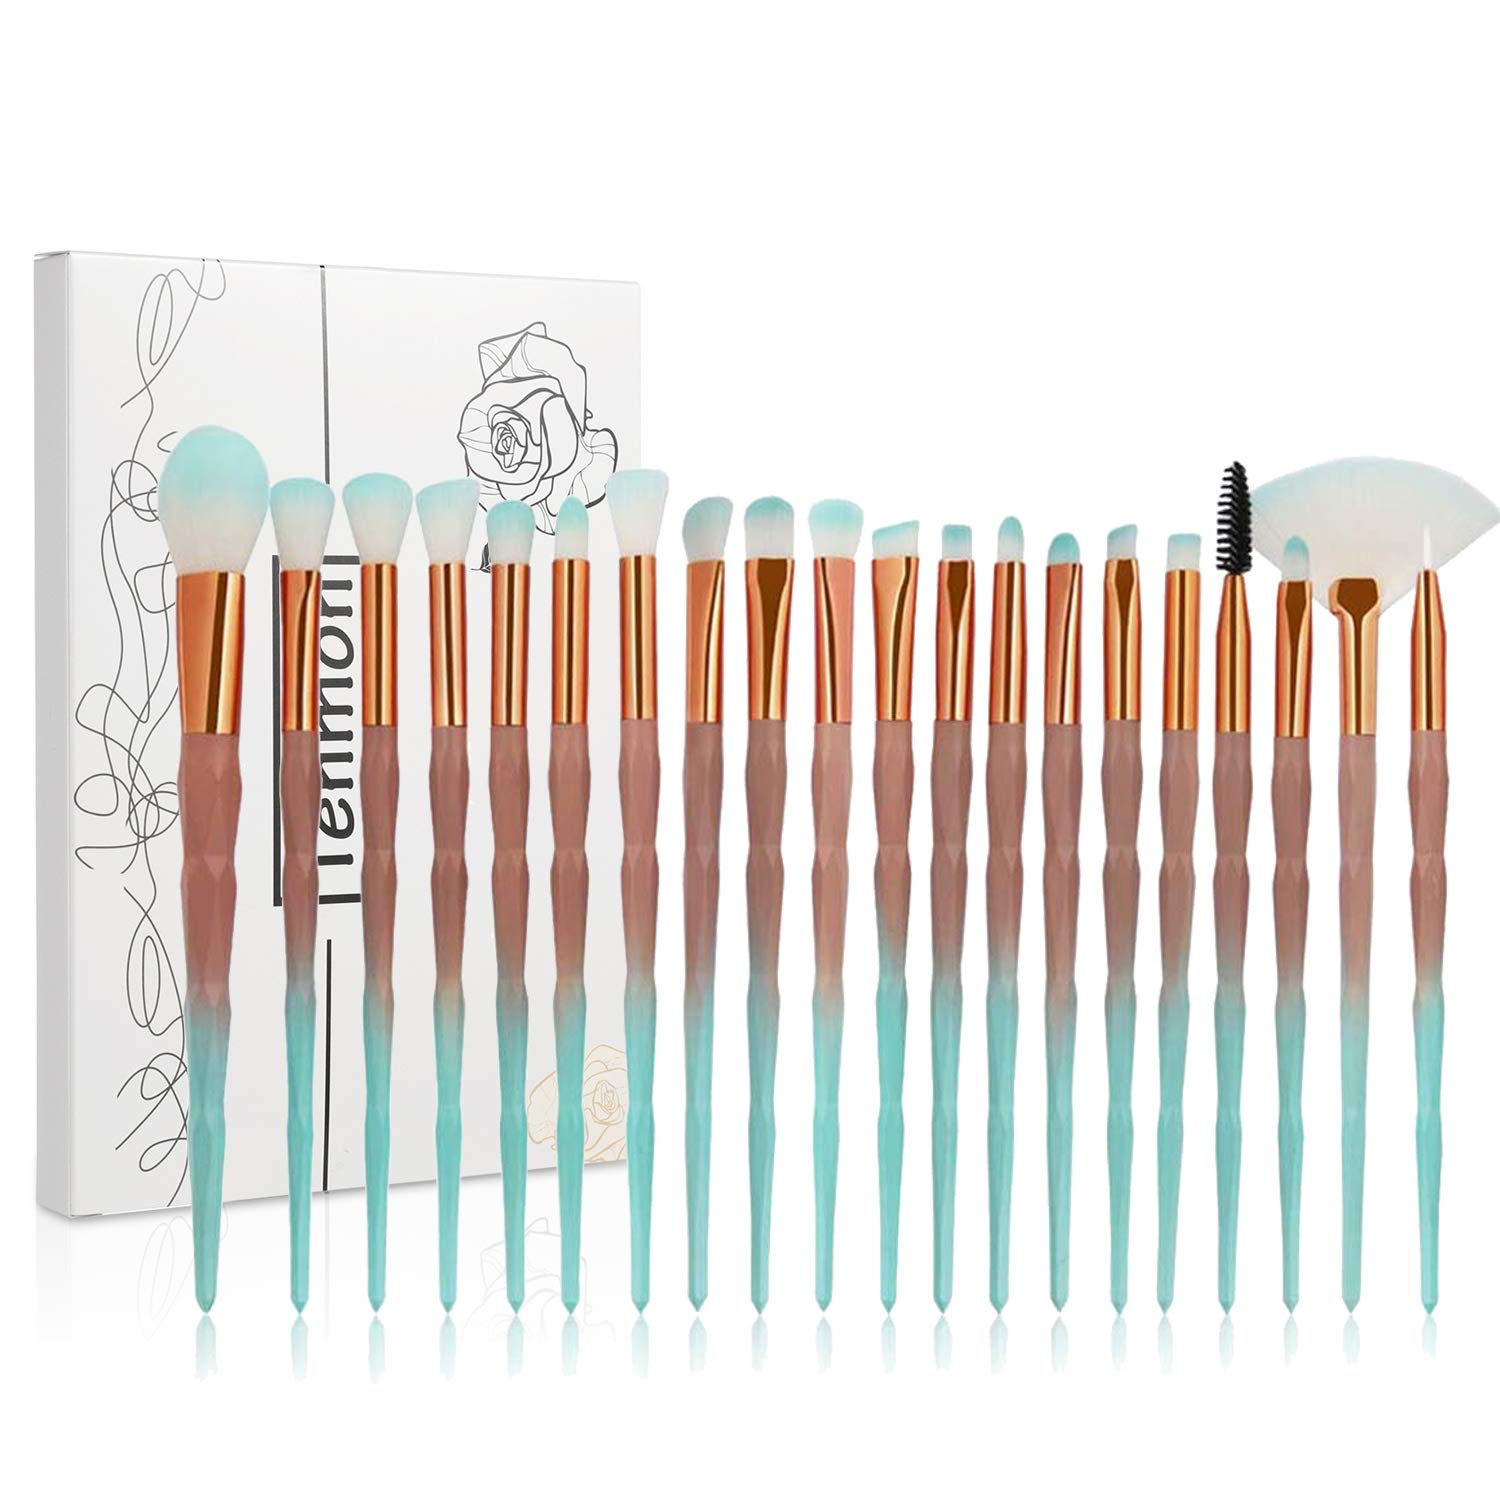 Tenmon 20pcs Unicorn Shiny Gold Diamond Makeup Brush Set with Box Professional Foundation Powder Cream Blush Brush Kits (Green)